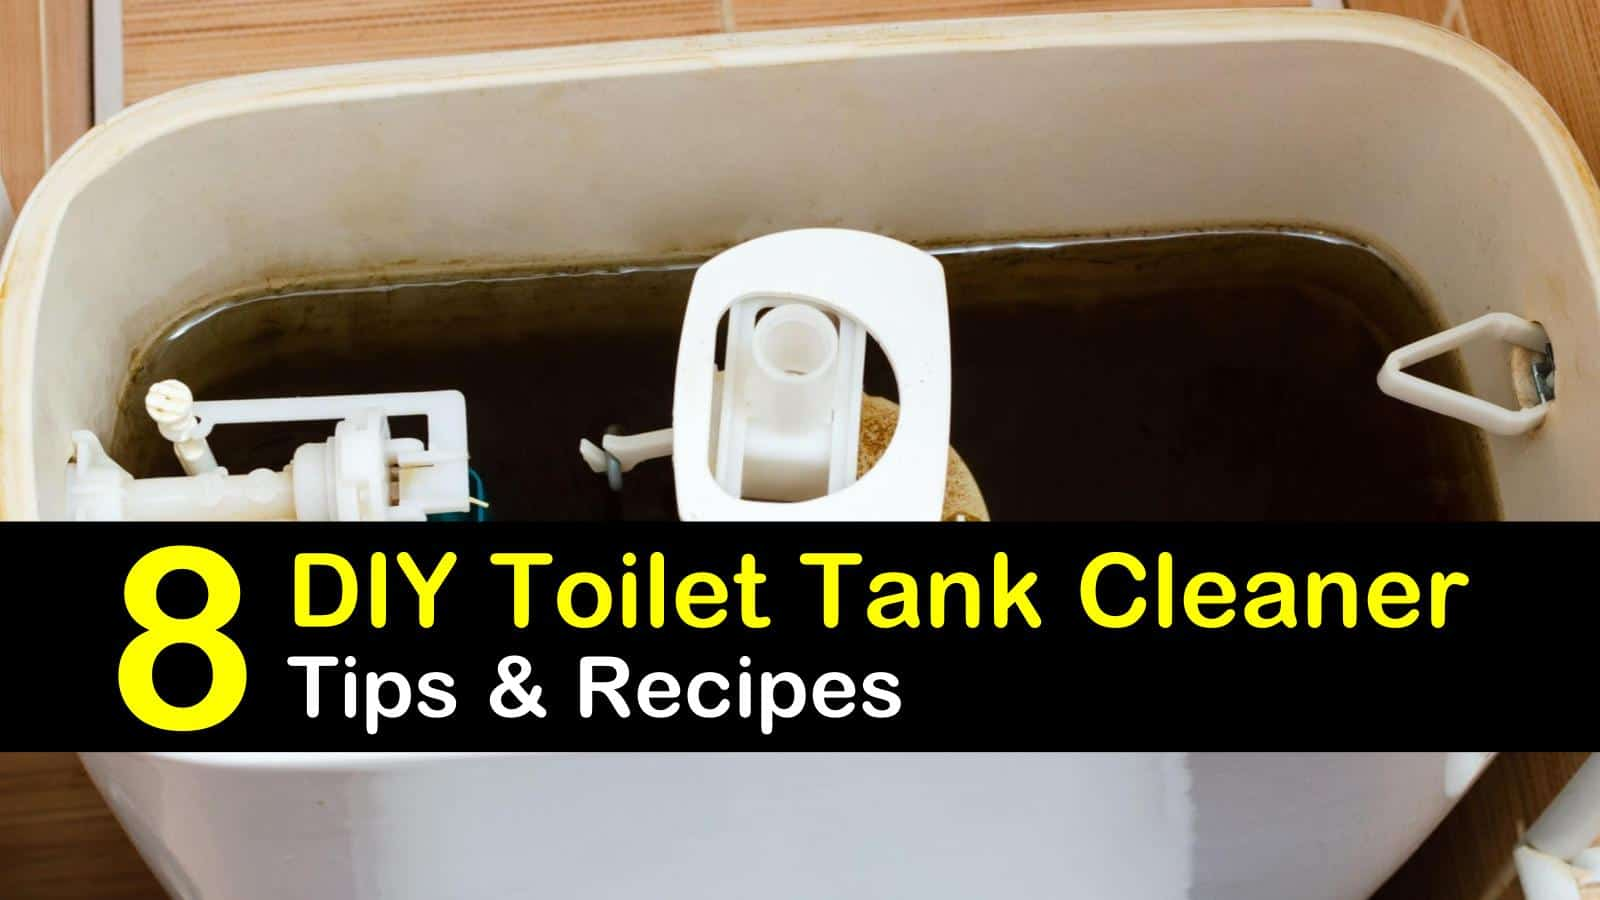 8 Diy Toilet Tank Cleaner Tips On How To Clean A Toilet Tank